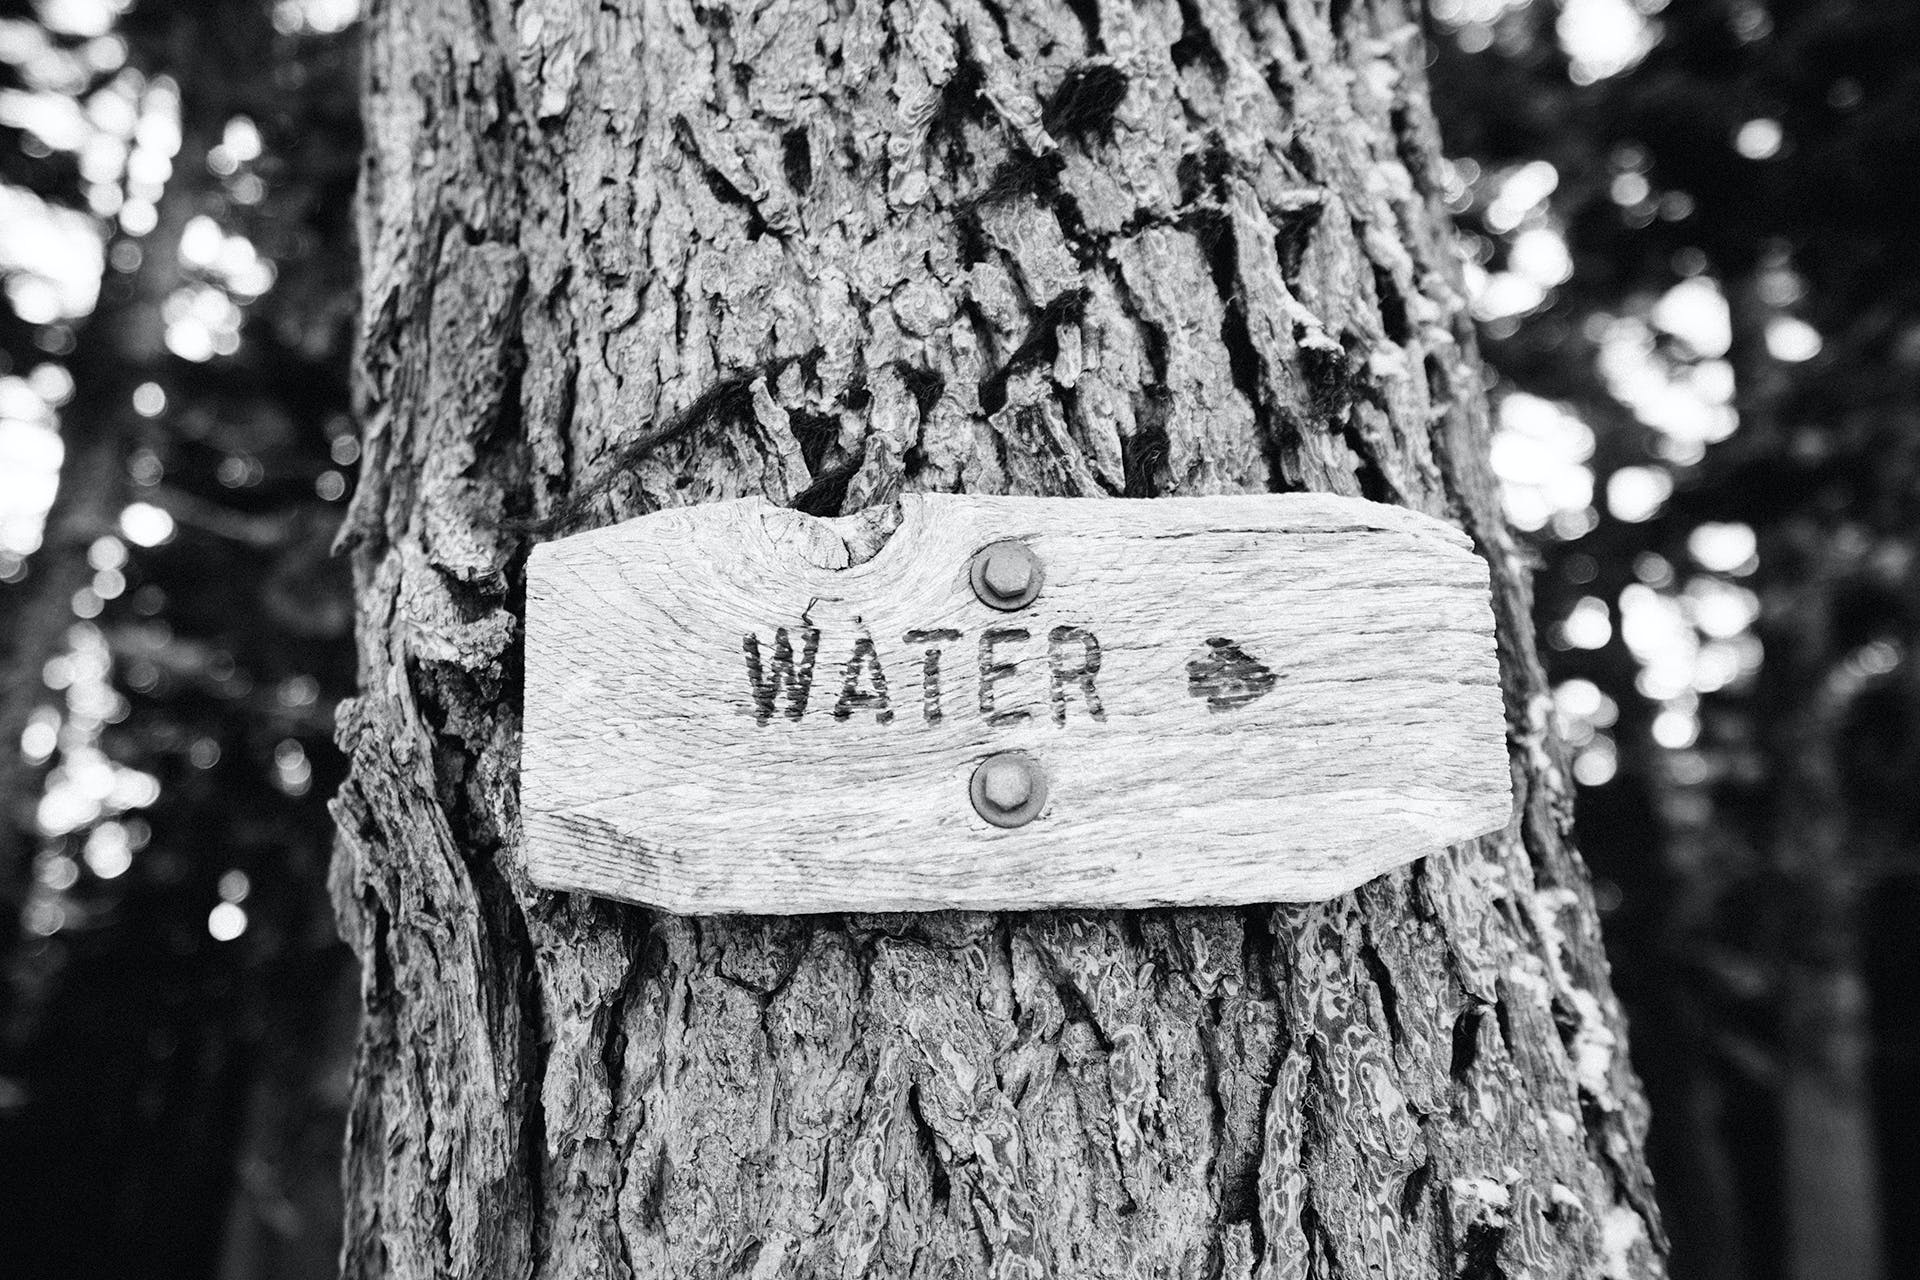 Grayscale Photography of Water Signage